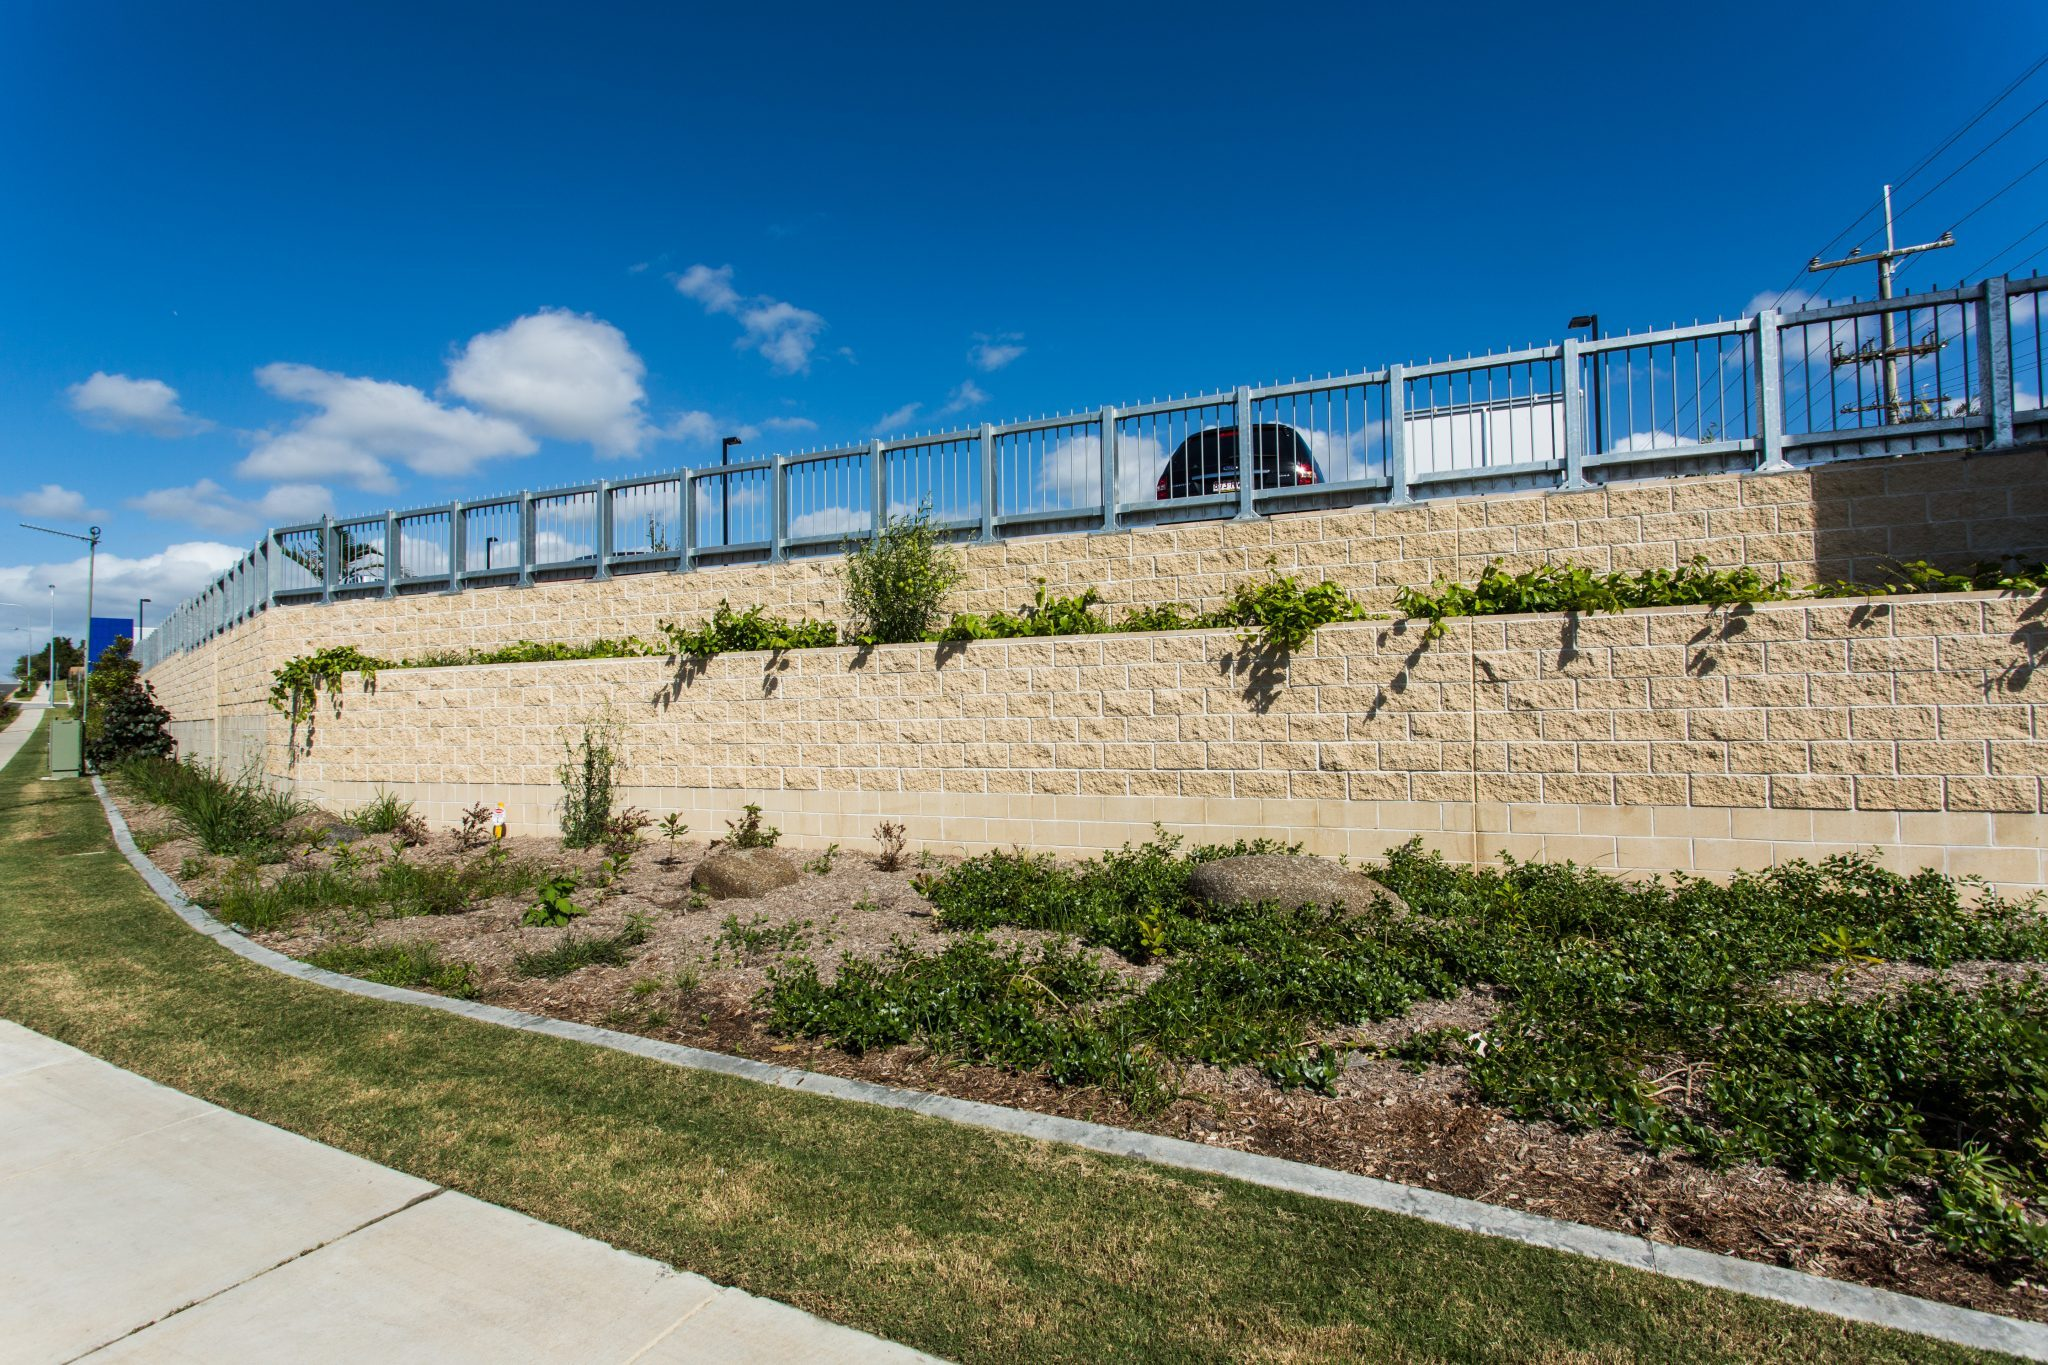 High_Block_Retaining_Wall_featuring a_terraced_Garden_Bed_Supporting_a_Steel_Fence_Barrier_on_top